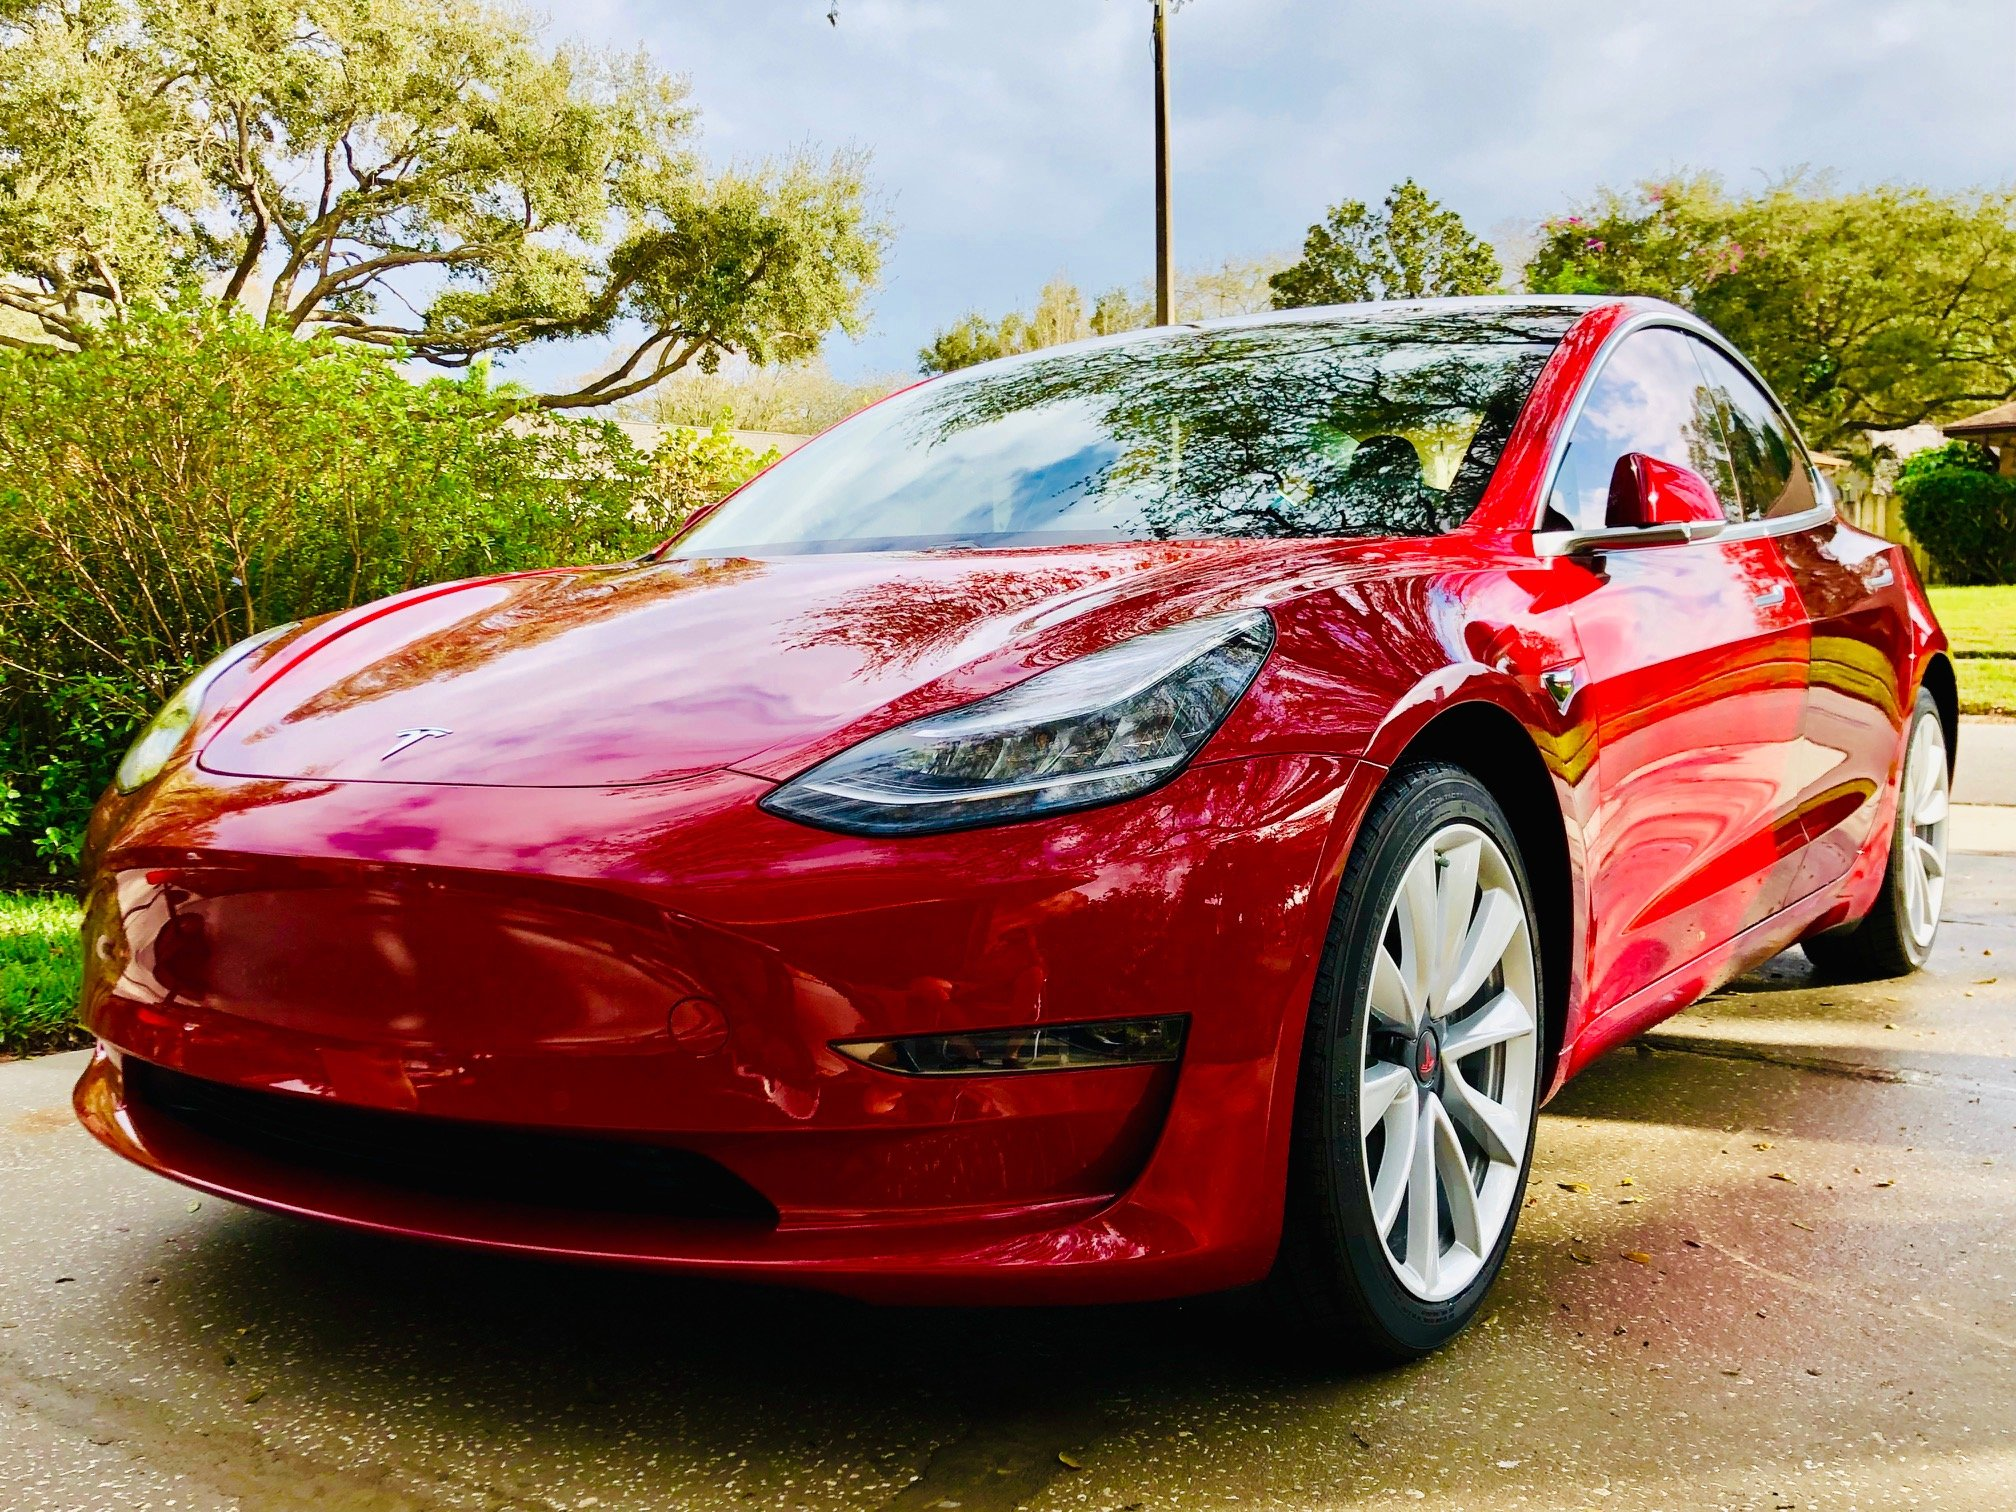 Kelley Blue Book: Tesla Model 3 To Be #2 Vehicle In USA At Holding Value Over 3 Years, But There's More